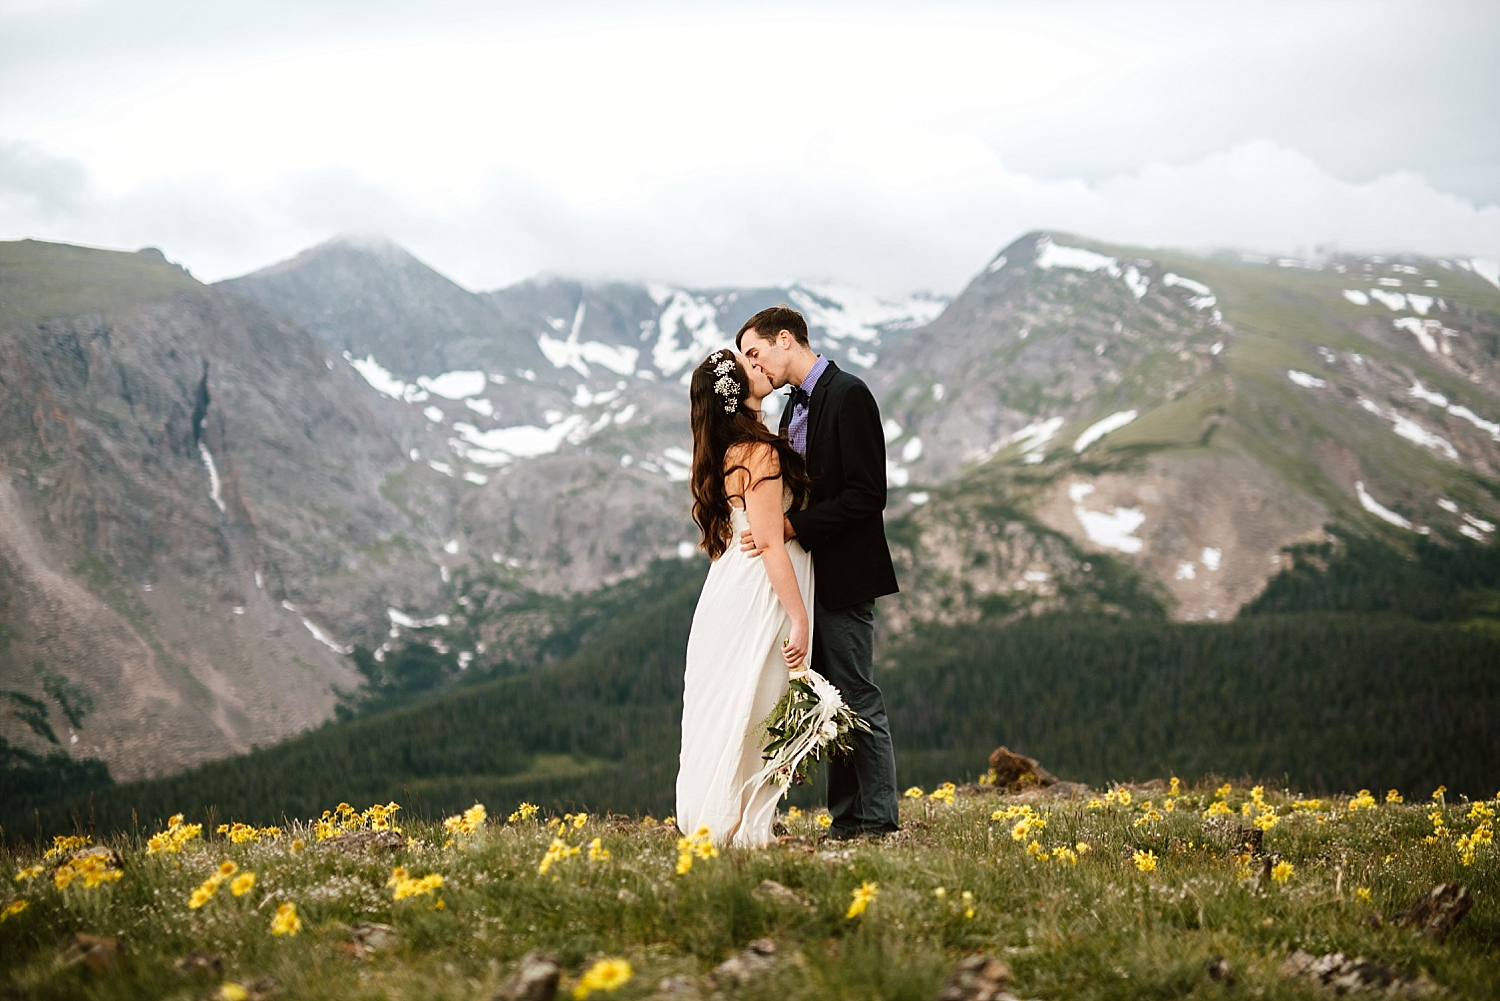 Jessica and Edward found this amazing flower field to get some pictures in on their wedding day! Such a great elopement location! | Trail Ridge Road elopement photos by Rocky Mountain National Park wedding photographer, Maddie Mae.